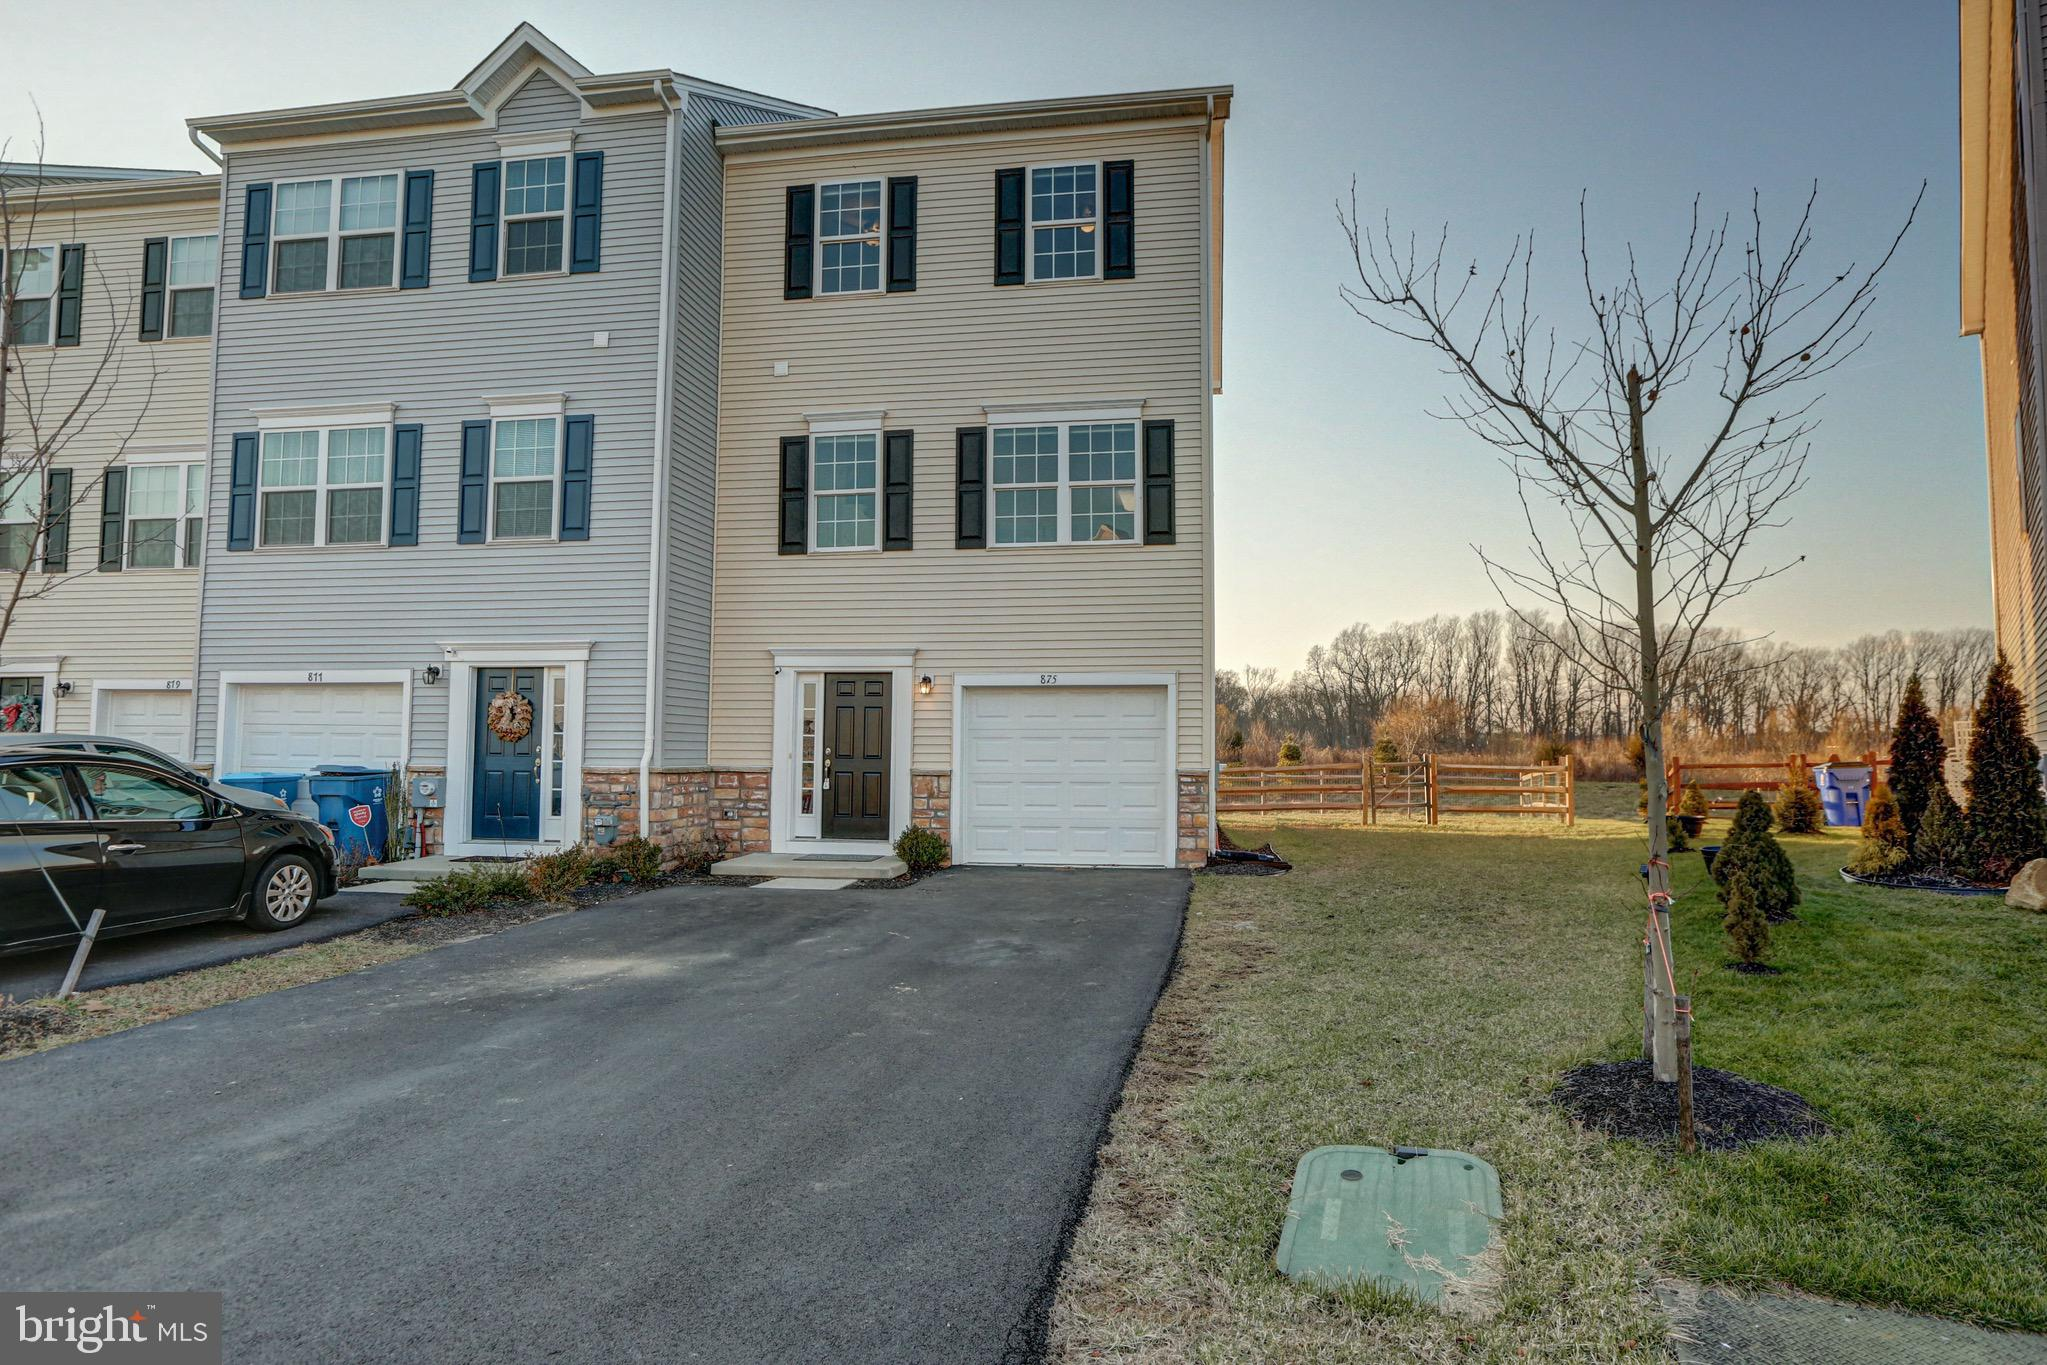 "Don't wait for new construction! Check out this gorgeous two year old town home in Hyett's Crossing now available! Located in north Middletown, this end-unit, 3-story home is priced to sell quickly and won't disappoint!  Outside, this home has a private driveway and one-car garage with plenty of storage space.   Enter level one into the foyer and you'll love the included storage shelves with lots of room for shoes, bags, and backpacks!  There is an unfinished storage room on also on this level that is drywalled and could easily be finished for recreational space.  Just outside the sliding glass door from this room is a paver patio and the rear yard is completely fenced in! Head up to level 2, which has your enormous open kitchen and family room area.  The kitchen has white 42"" cabinets, granite, stainless appliances and a large island.  There is another sliding glass door which leads to a maintenance free deck with fantastic sunset views.  Also on this level is a half bathroom!  Next up is level 3 where you have your 3 bedrooms and 2 full bathrooms as well as your laundry area!  Lots of features to enjoy in this home and in a great location! Come out today and get a glimpse before its SOLD!  *Private showings only due to COVID pandemic, please wear masks, sanitize before entering, and limit touching."